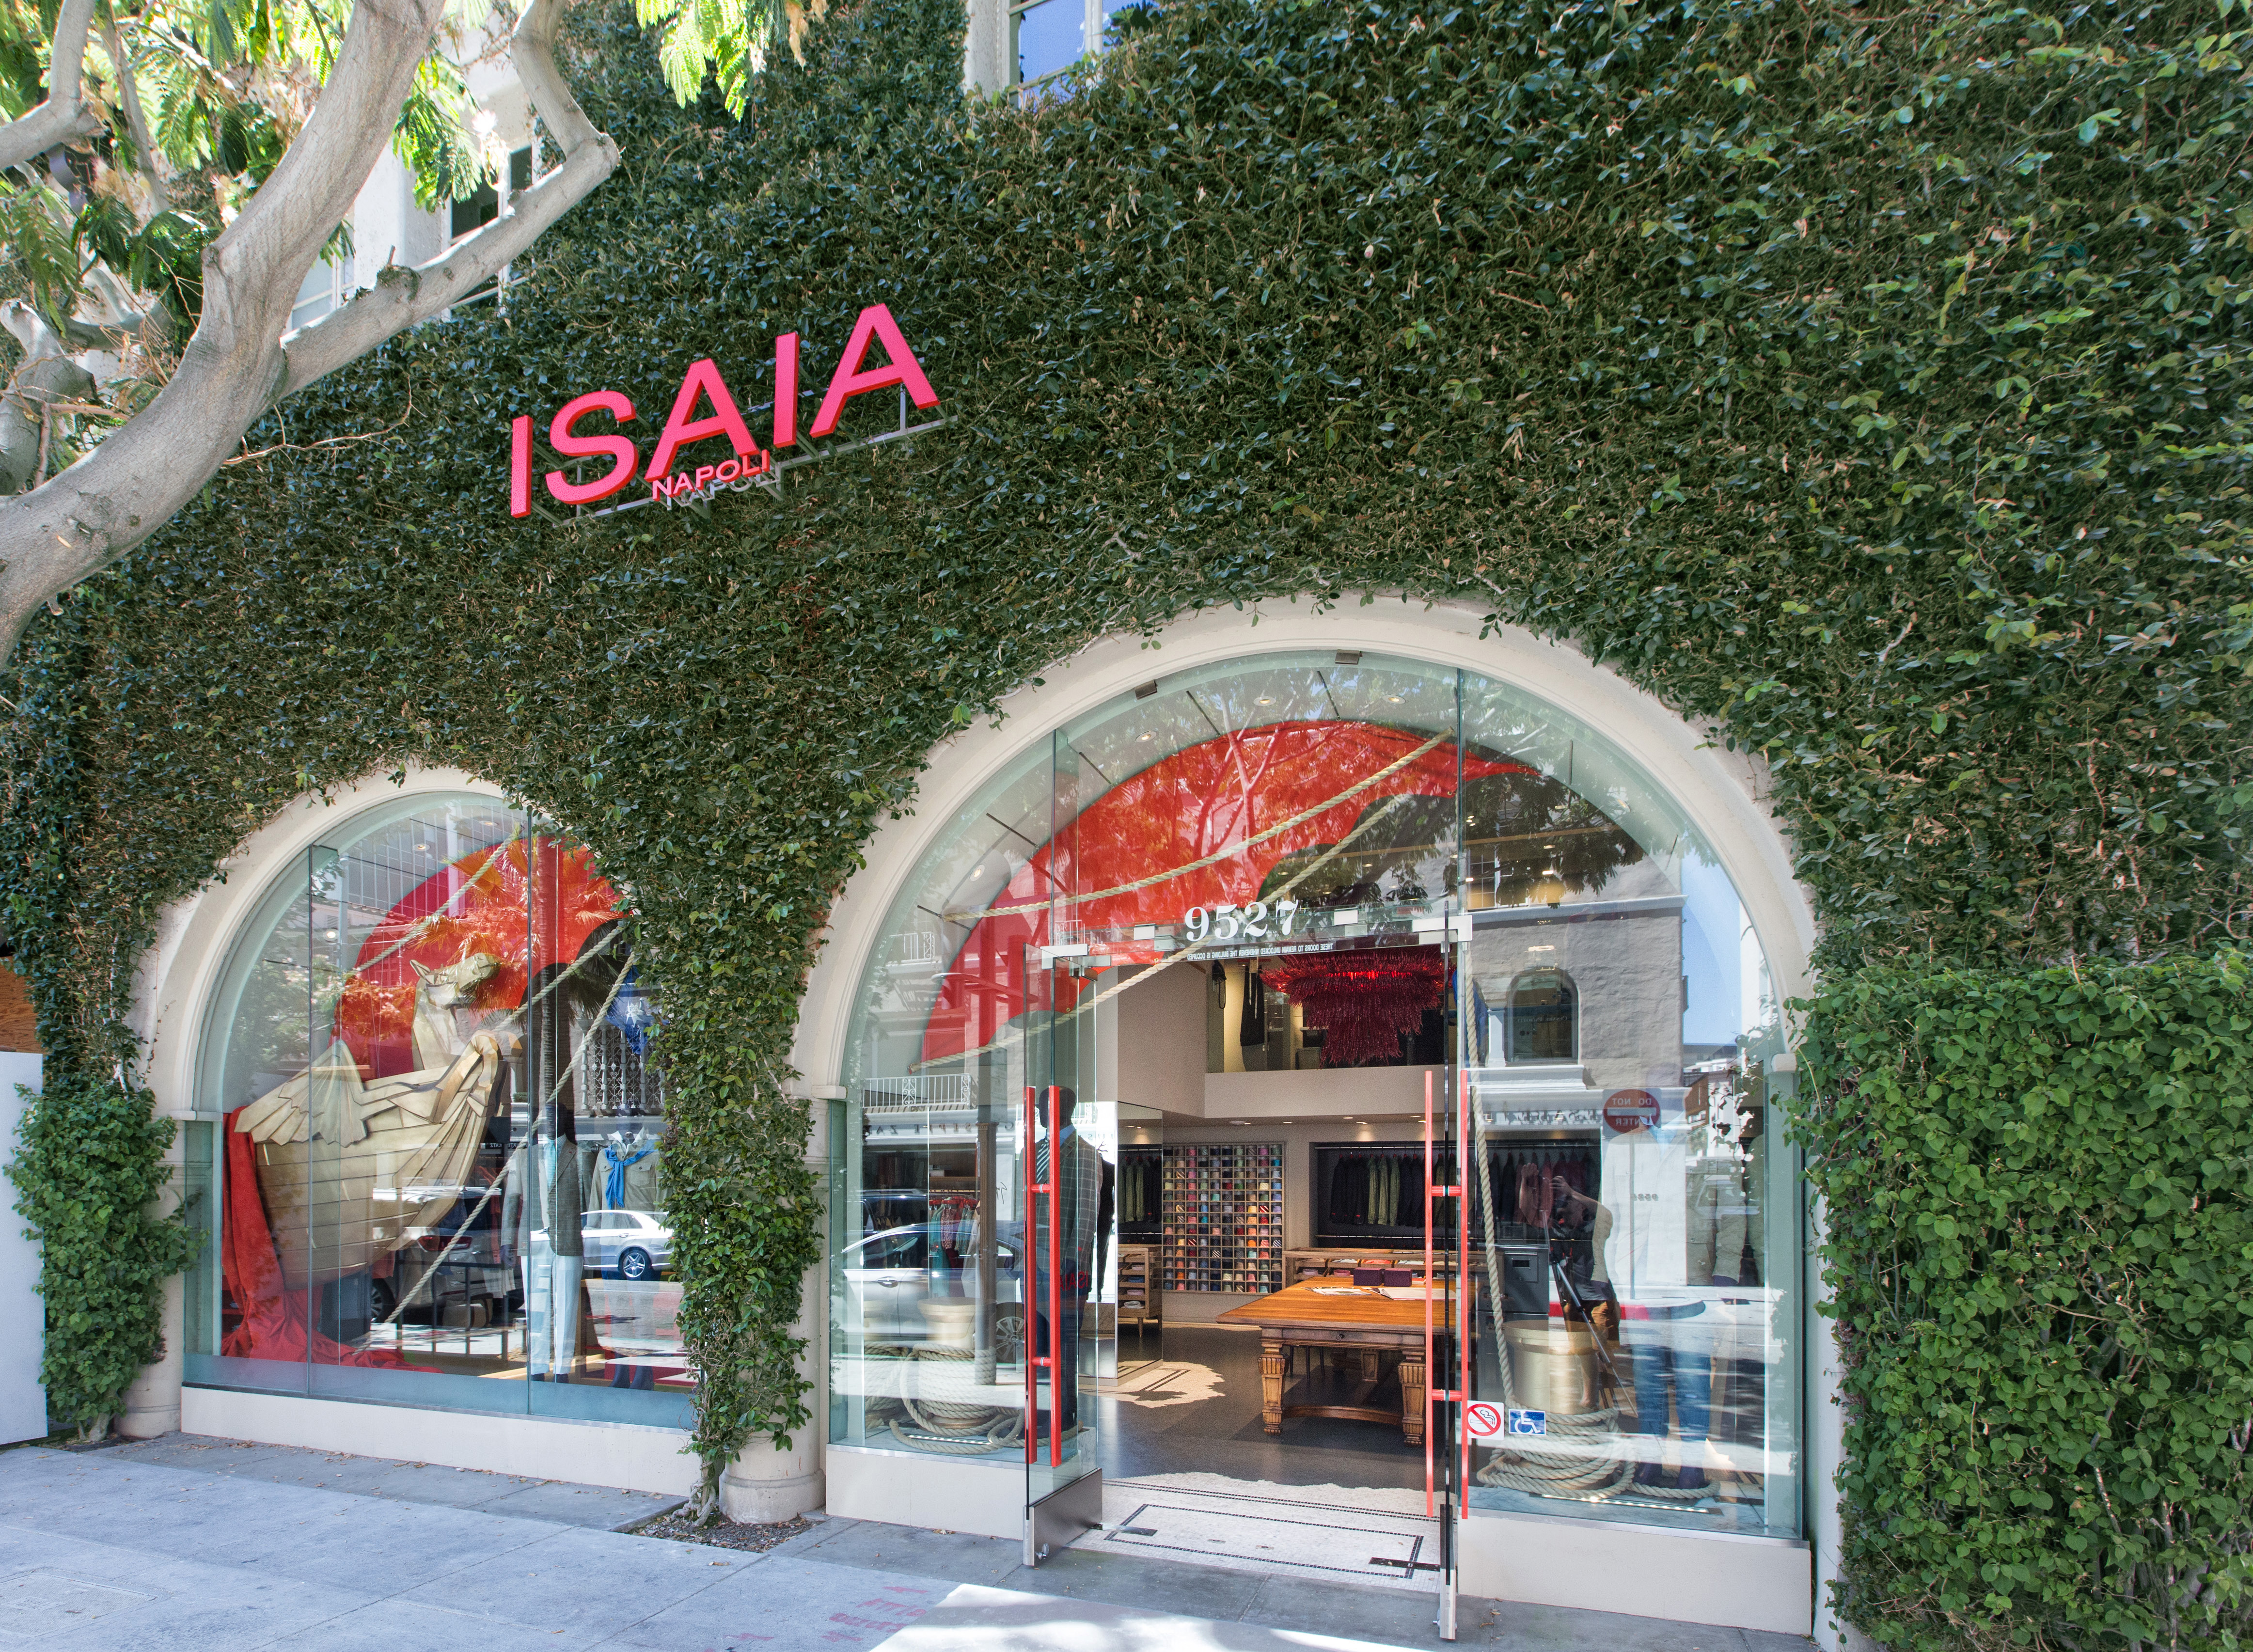 Isaia's Boutiques